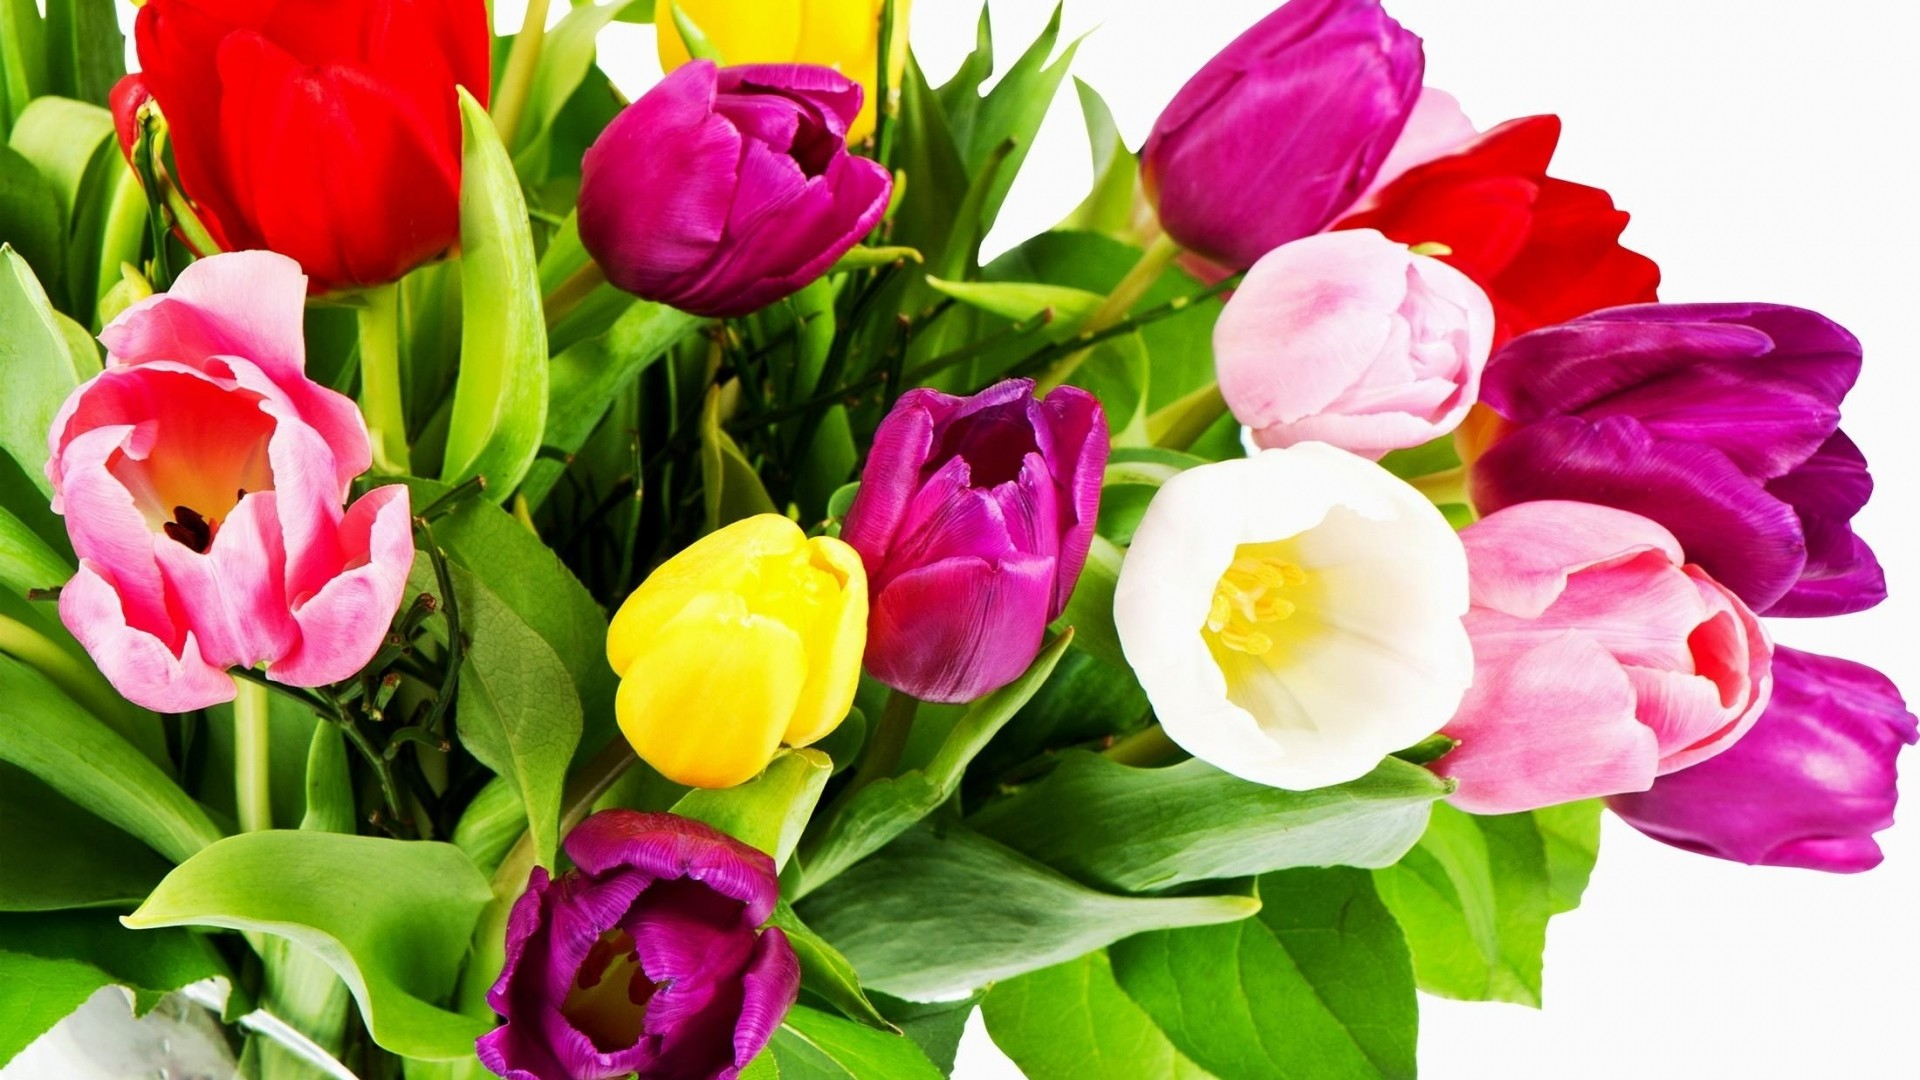 Wallpaper tulips, flowers, bouquet, bright, colorful, white  background